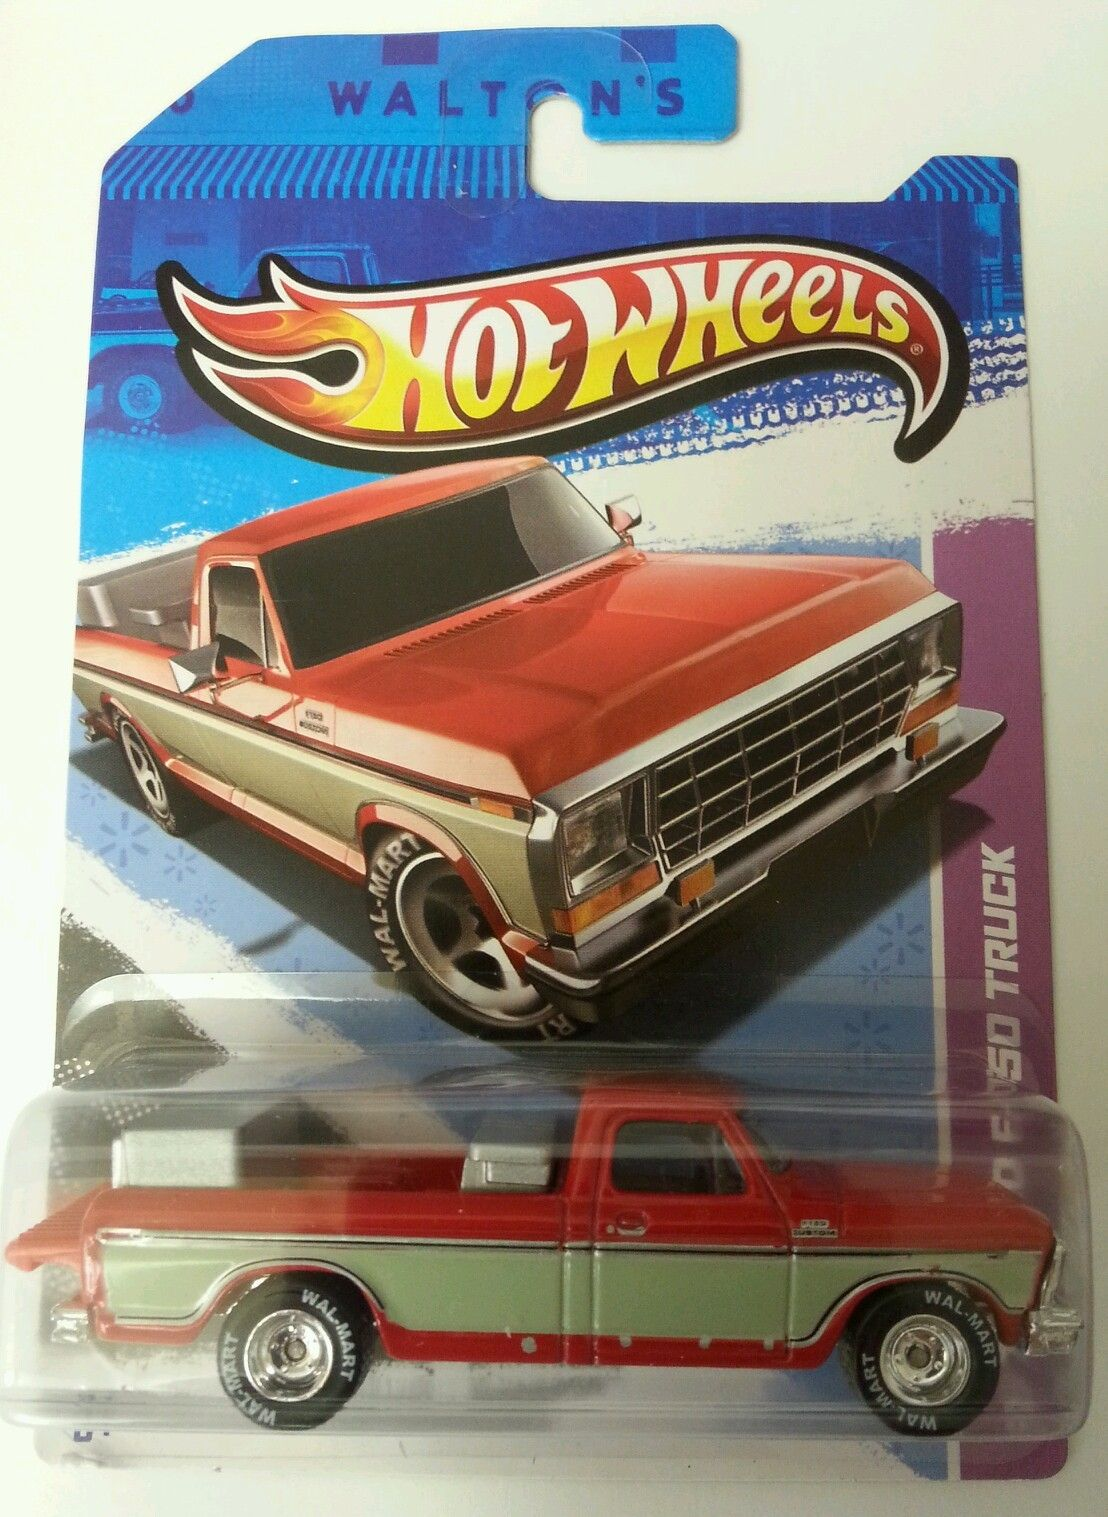 2013 hot wheels 1979 ford f 150 truck walmart exclusive vhtf real rider tires sam